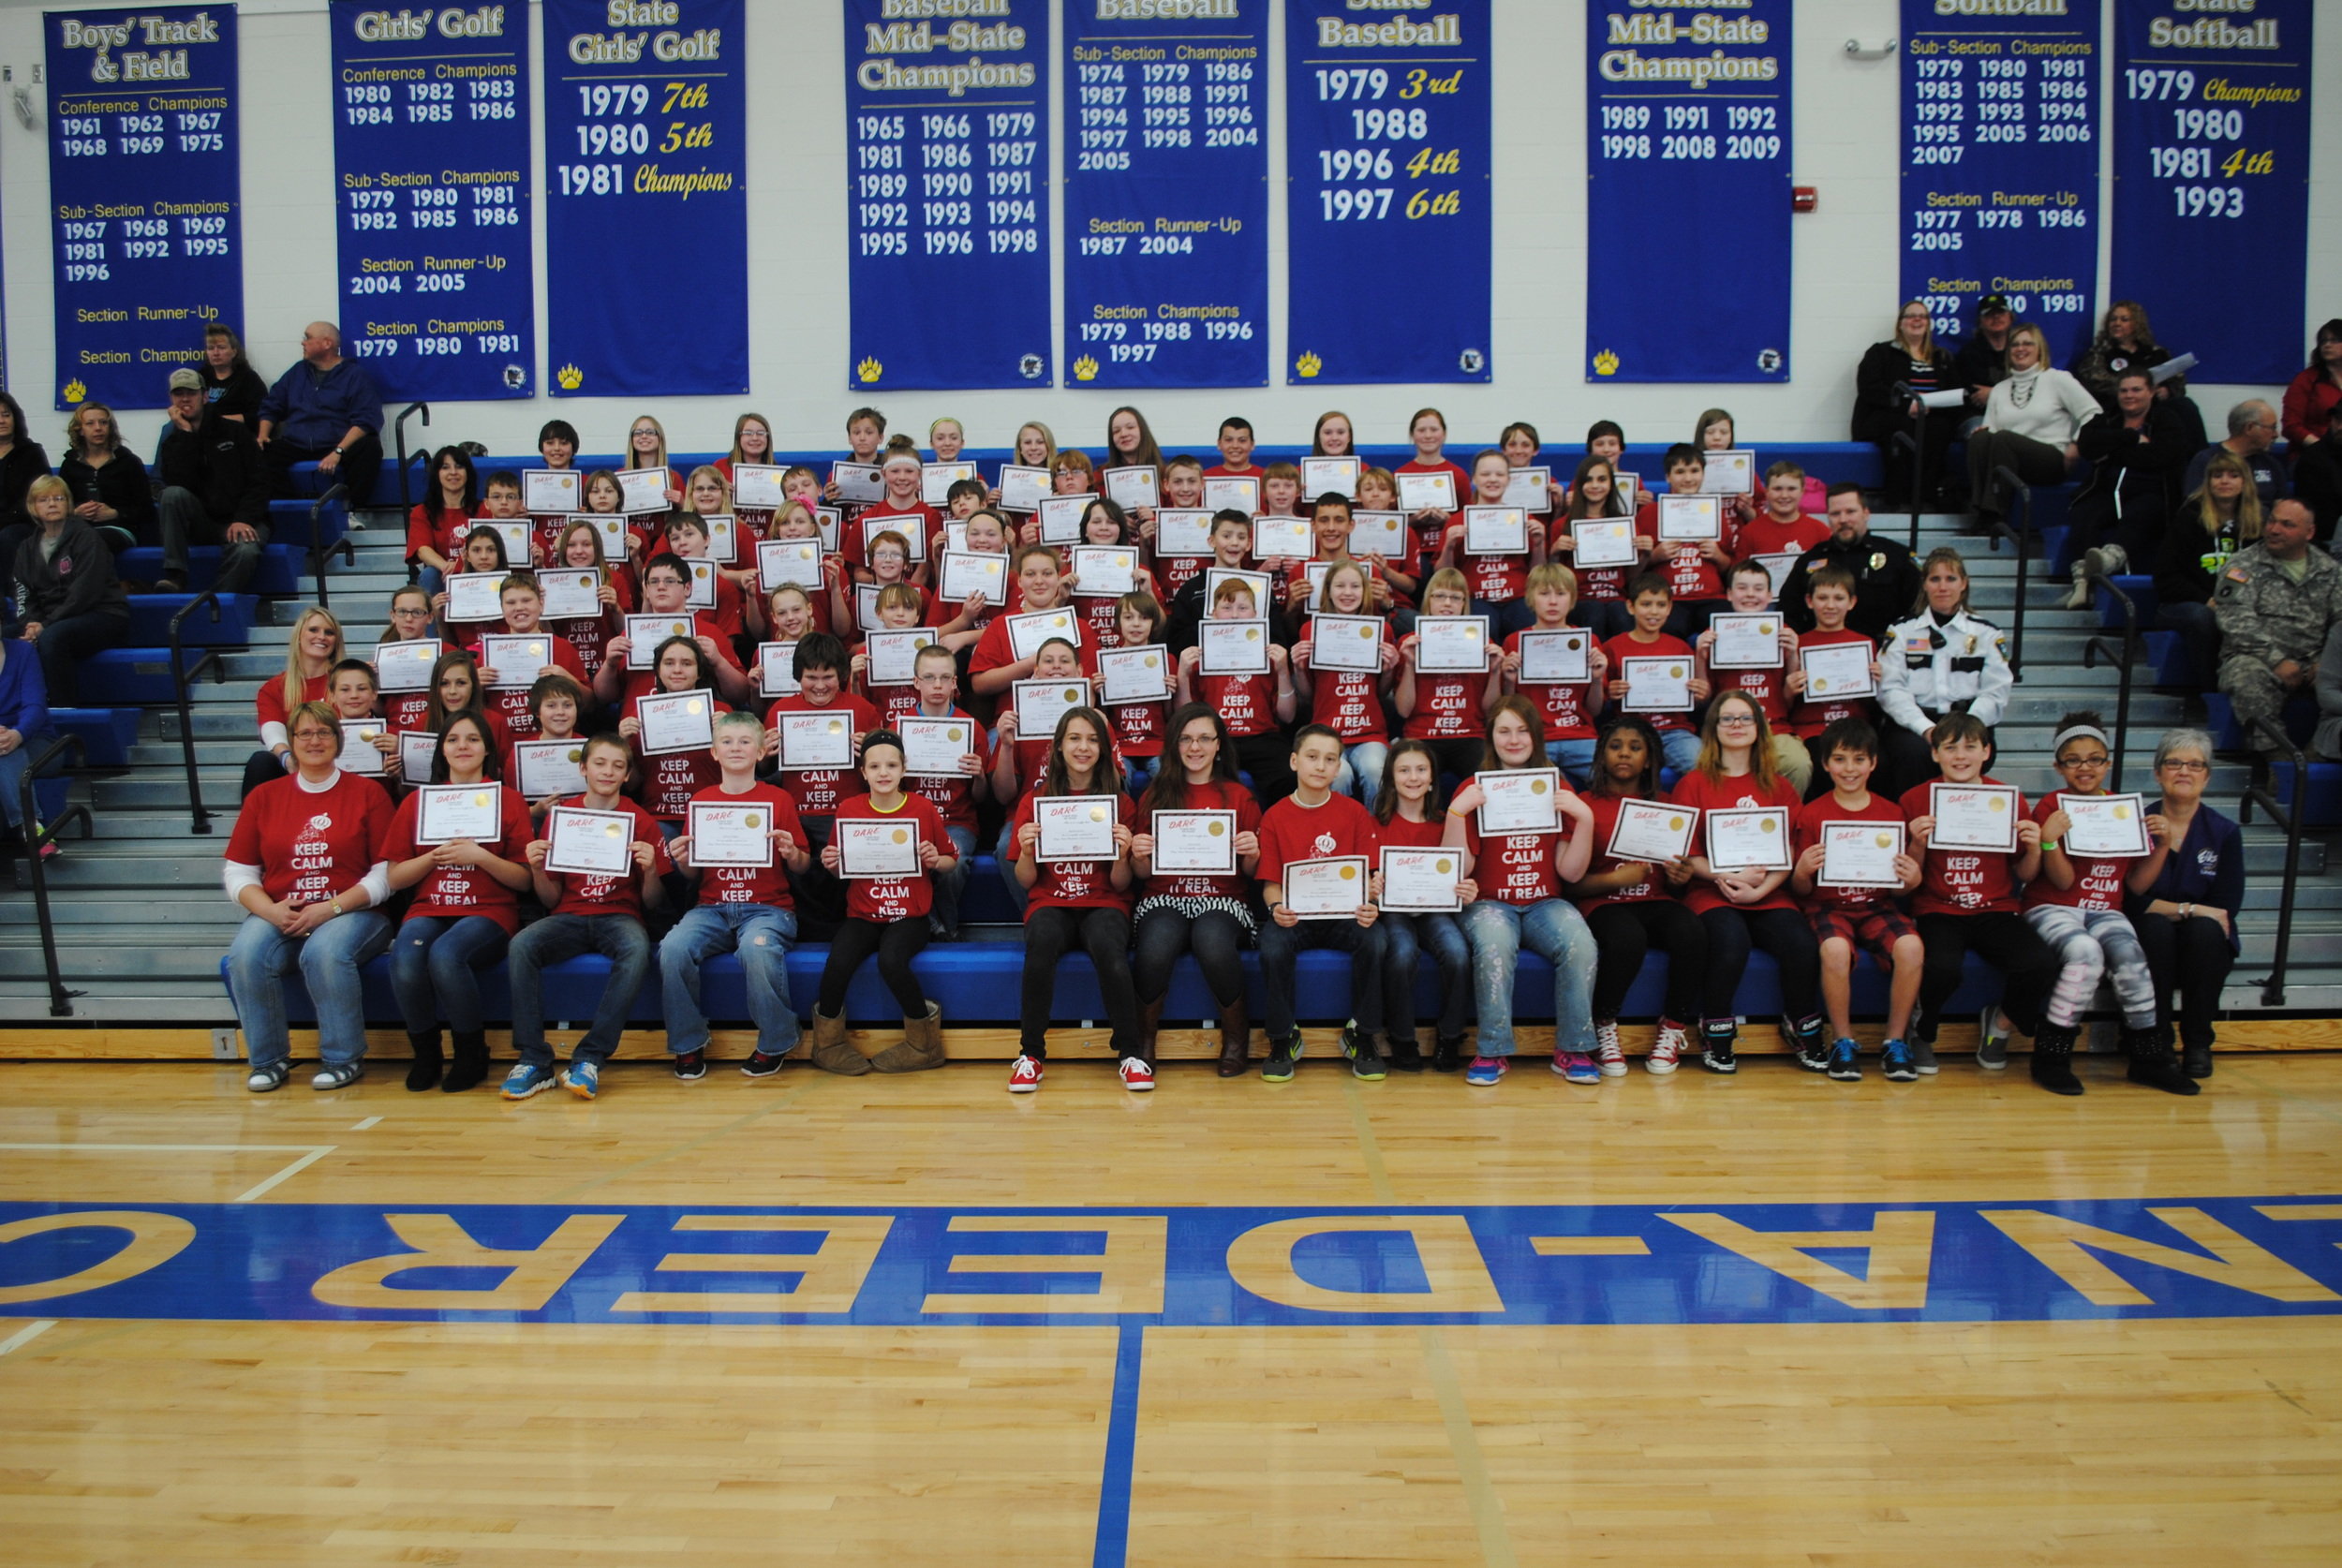 Seventy-four sixth-graders received their graduation certificate and a T-shirt at the D.A.R.E. culmination ceremony, April 8 at Wadena-Deer Creek Middle/High School.  Photos by Dana Pavek, WDC Schools.